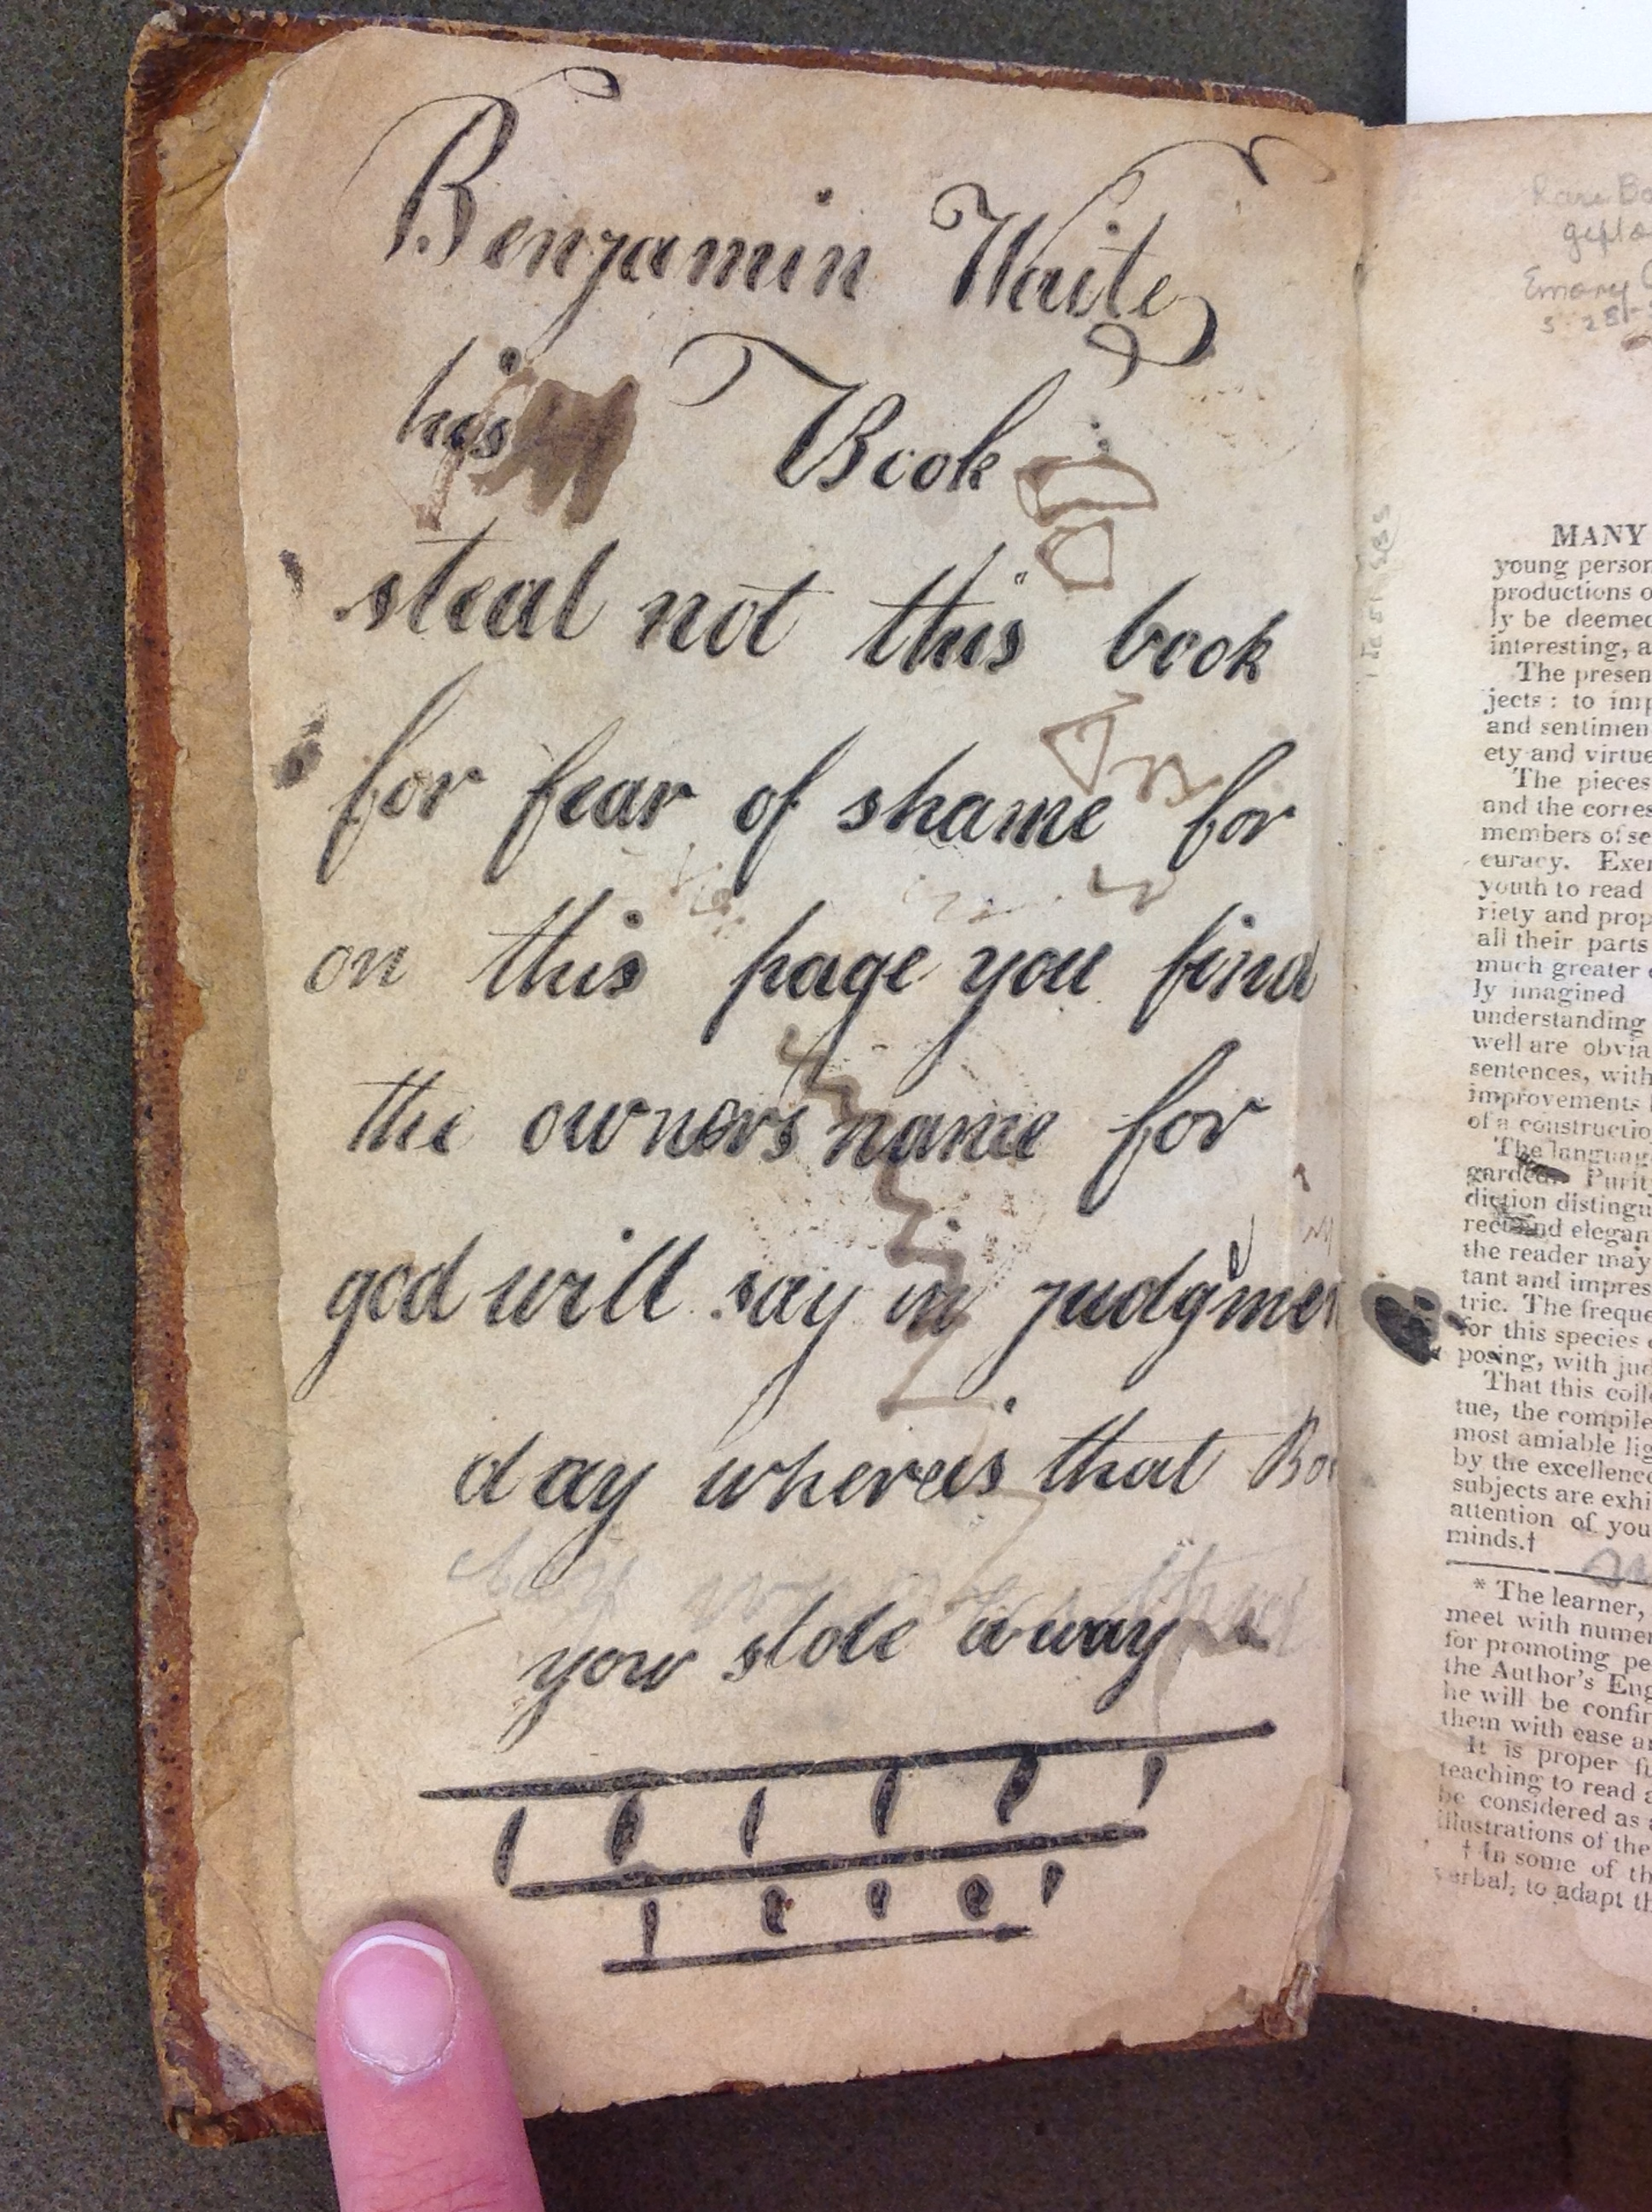 "Flyleaf rhyme: ""Benjamin Waite his Book. Steal not this book for fear of shame for on this page you find the owner's name. For God will say on Judgment Day where is that book you stole away."""